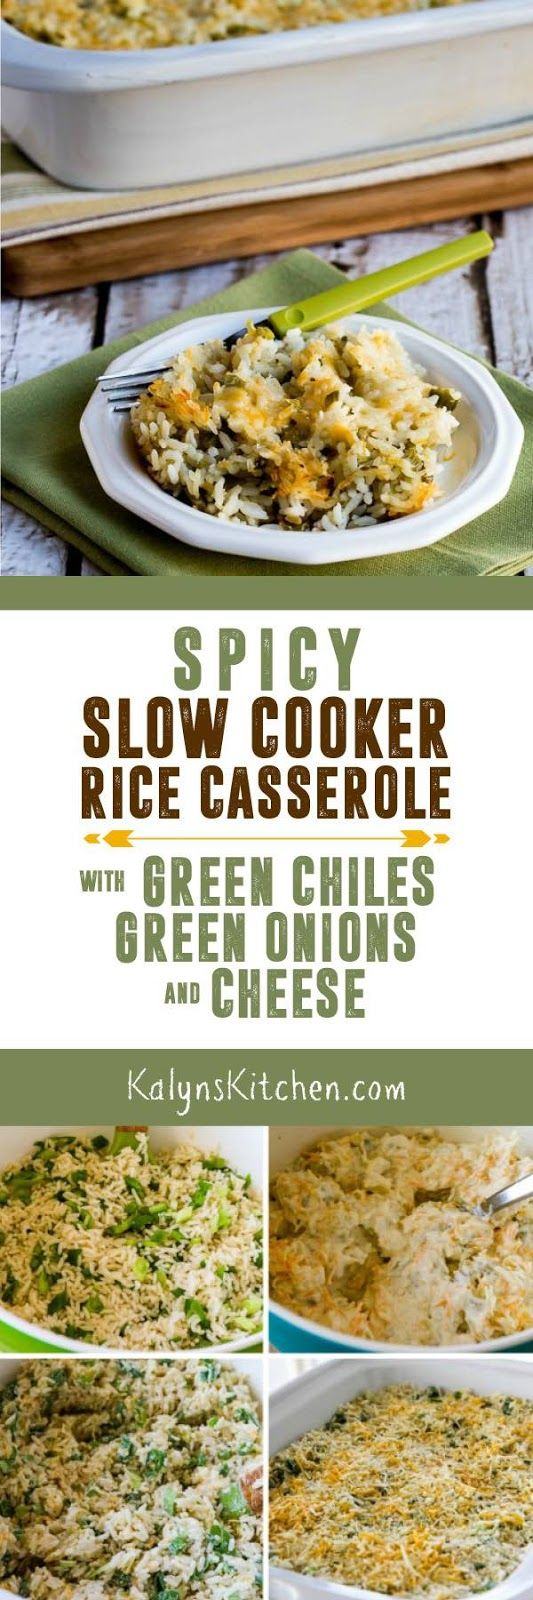 Spicy Slow Cooker Rice Casserole with Green Chiles, Green Onions, and ...